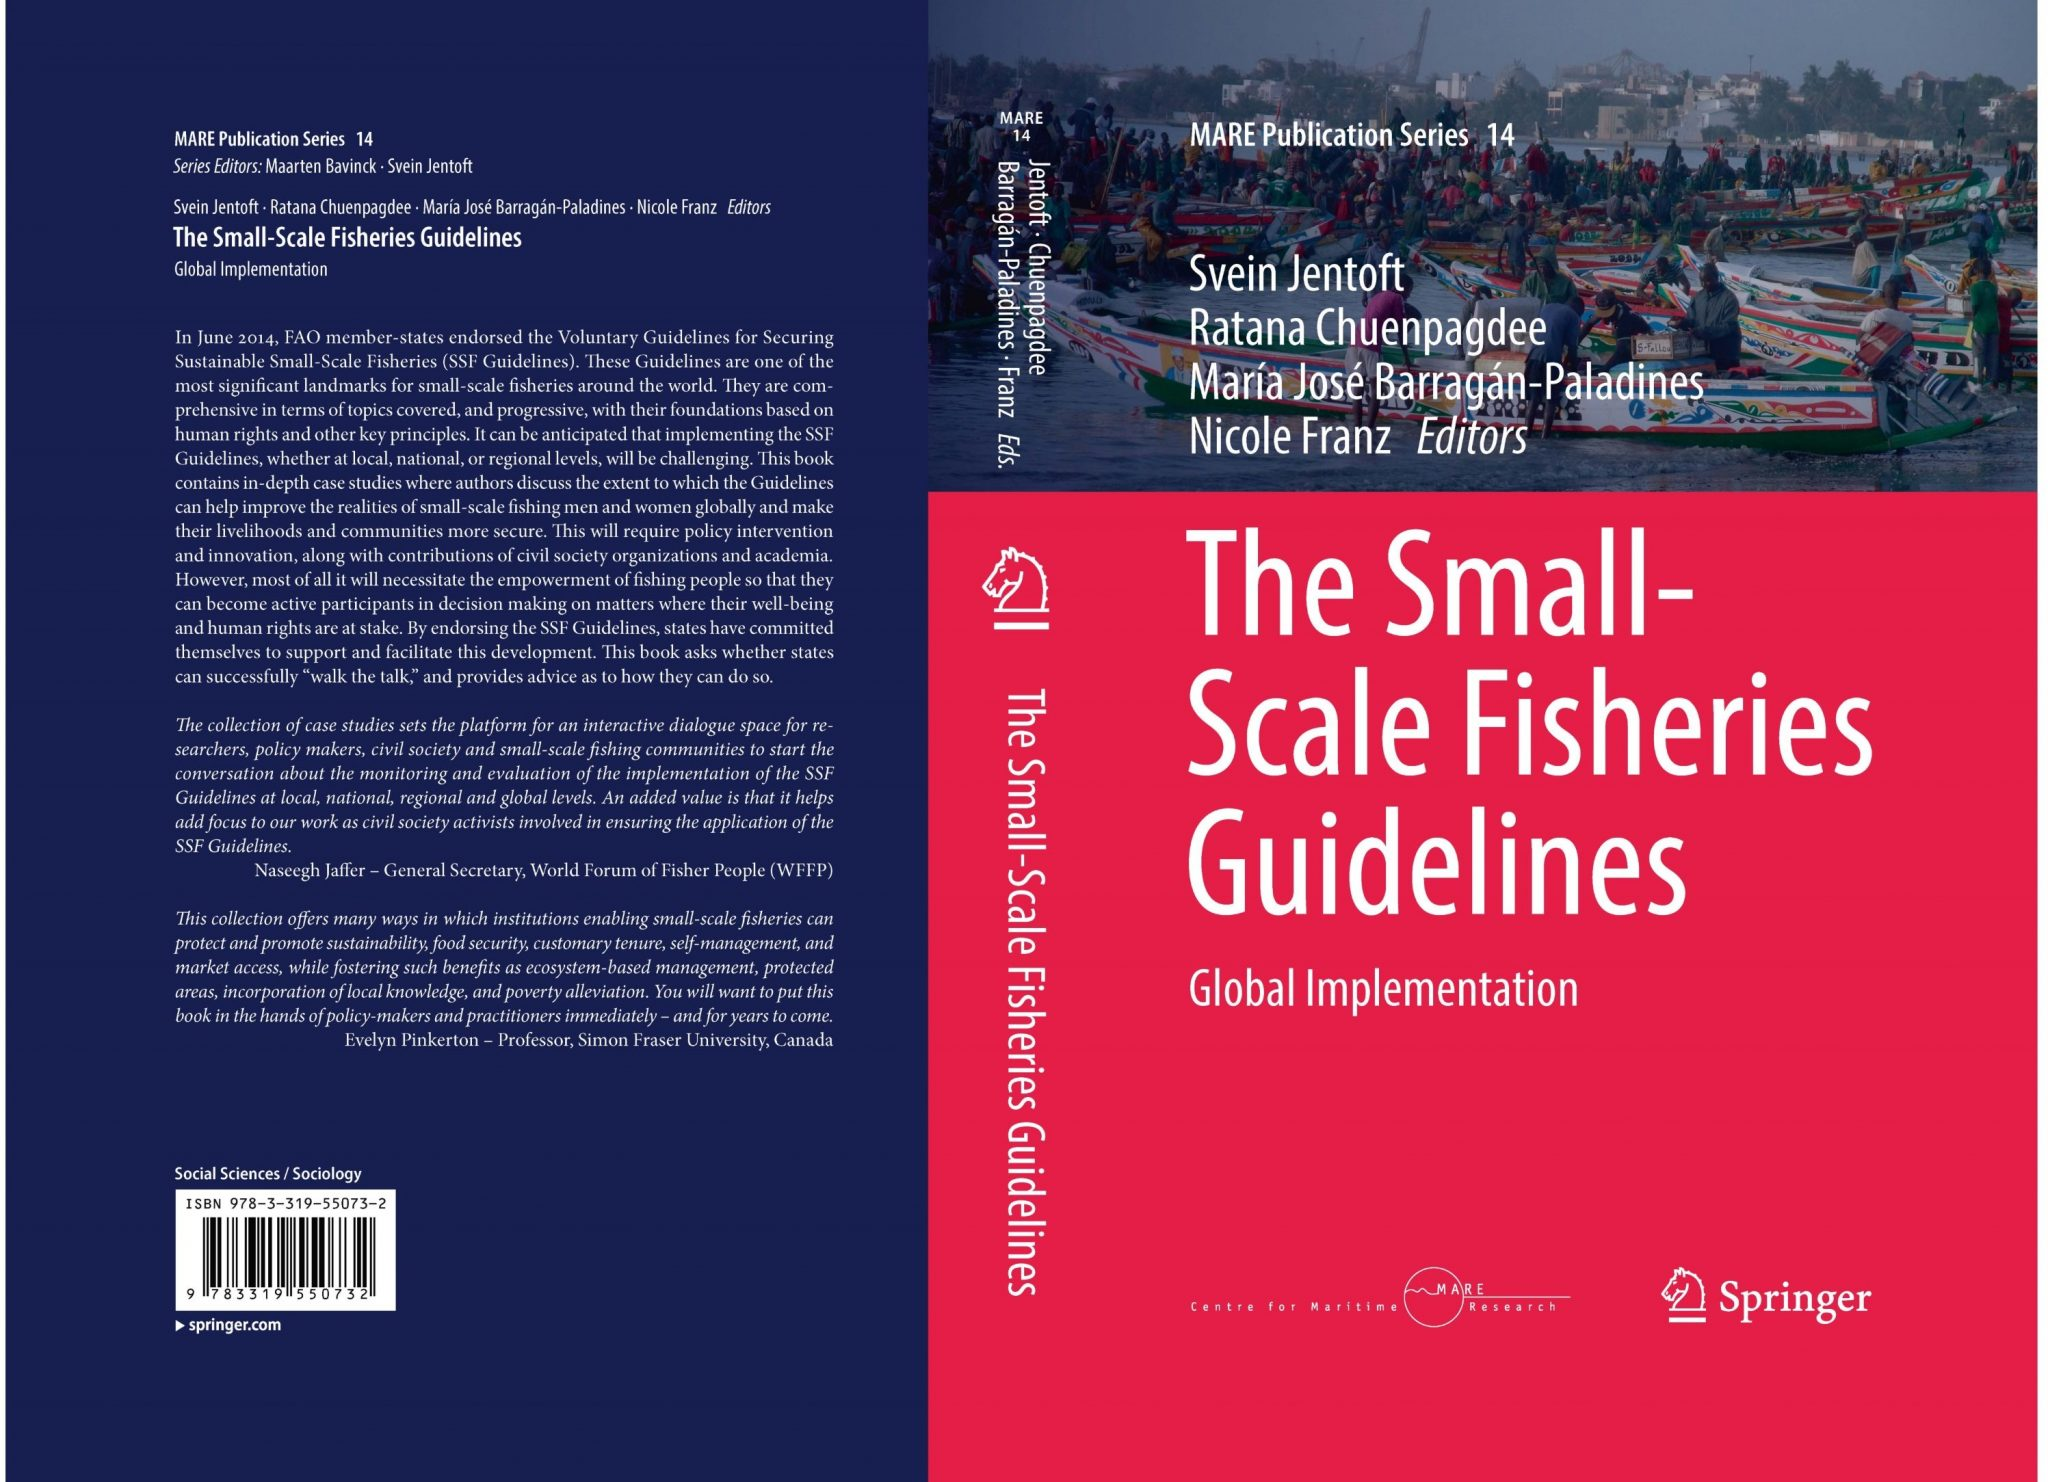 TBTI publishes a book on the Small-Scale Fisheries Guidelines